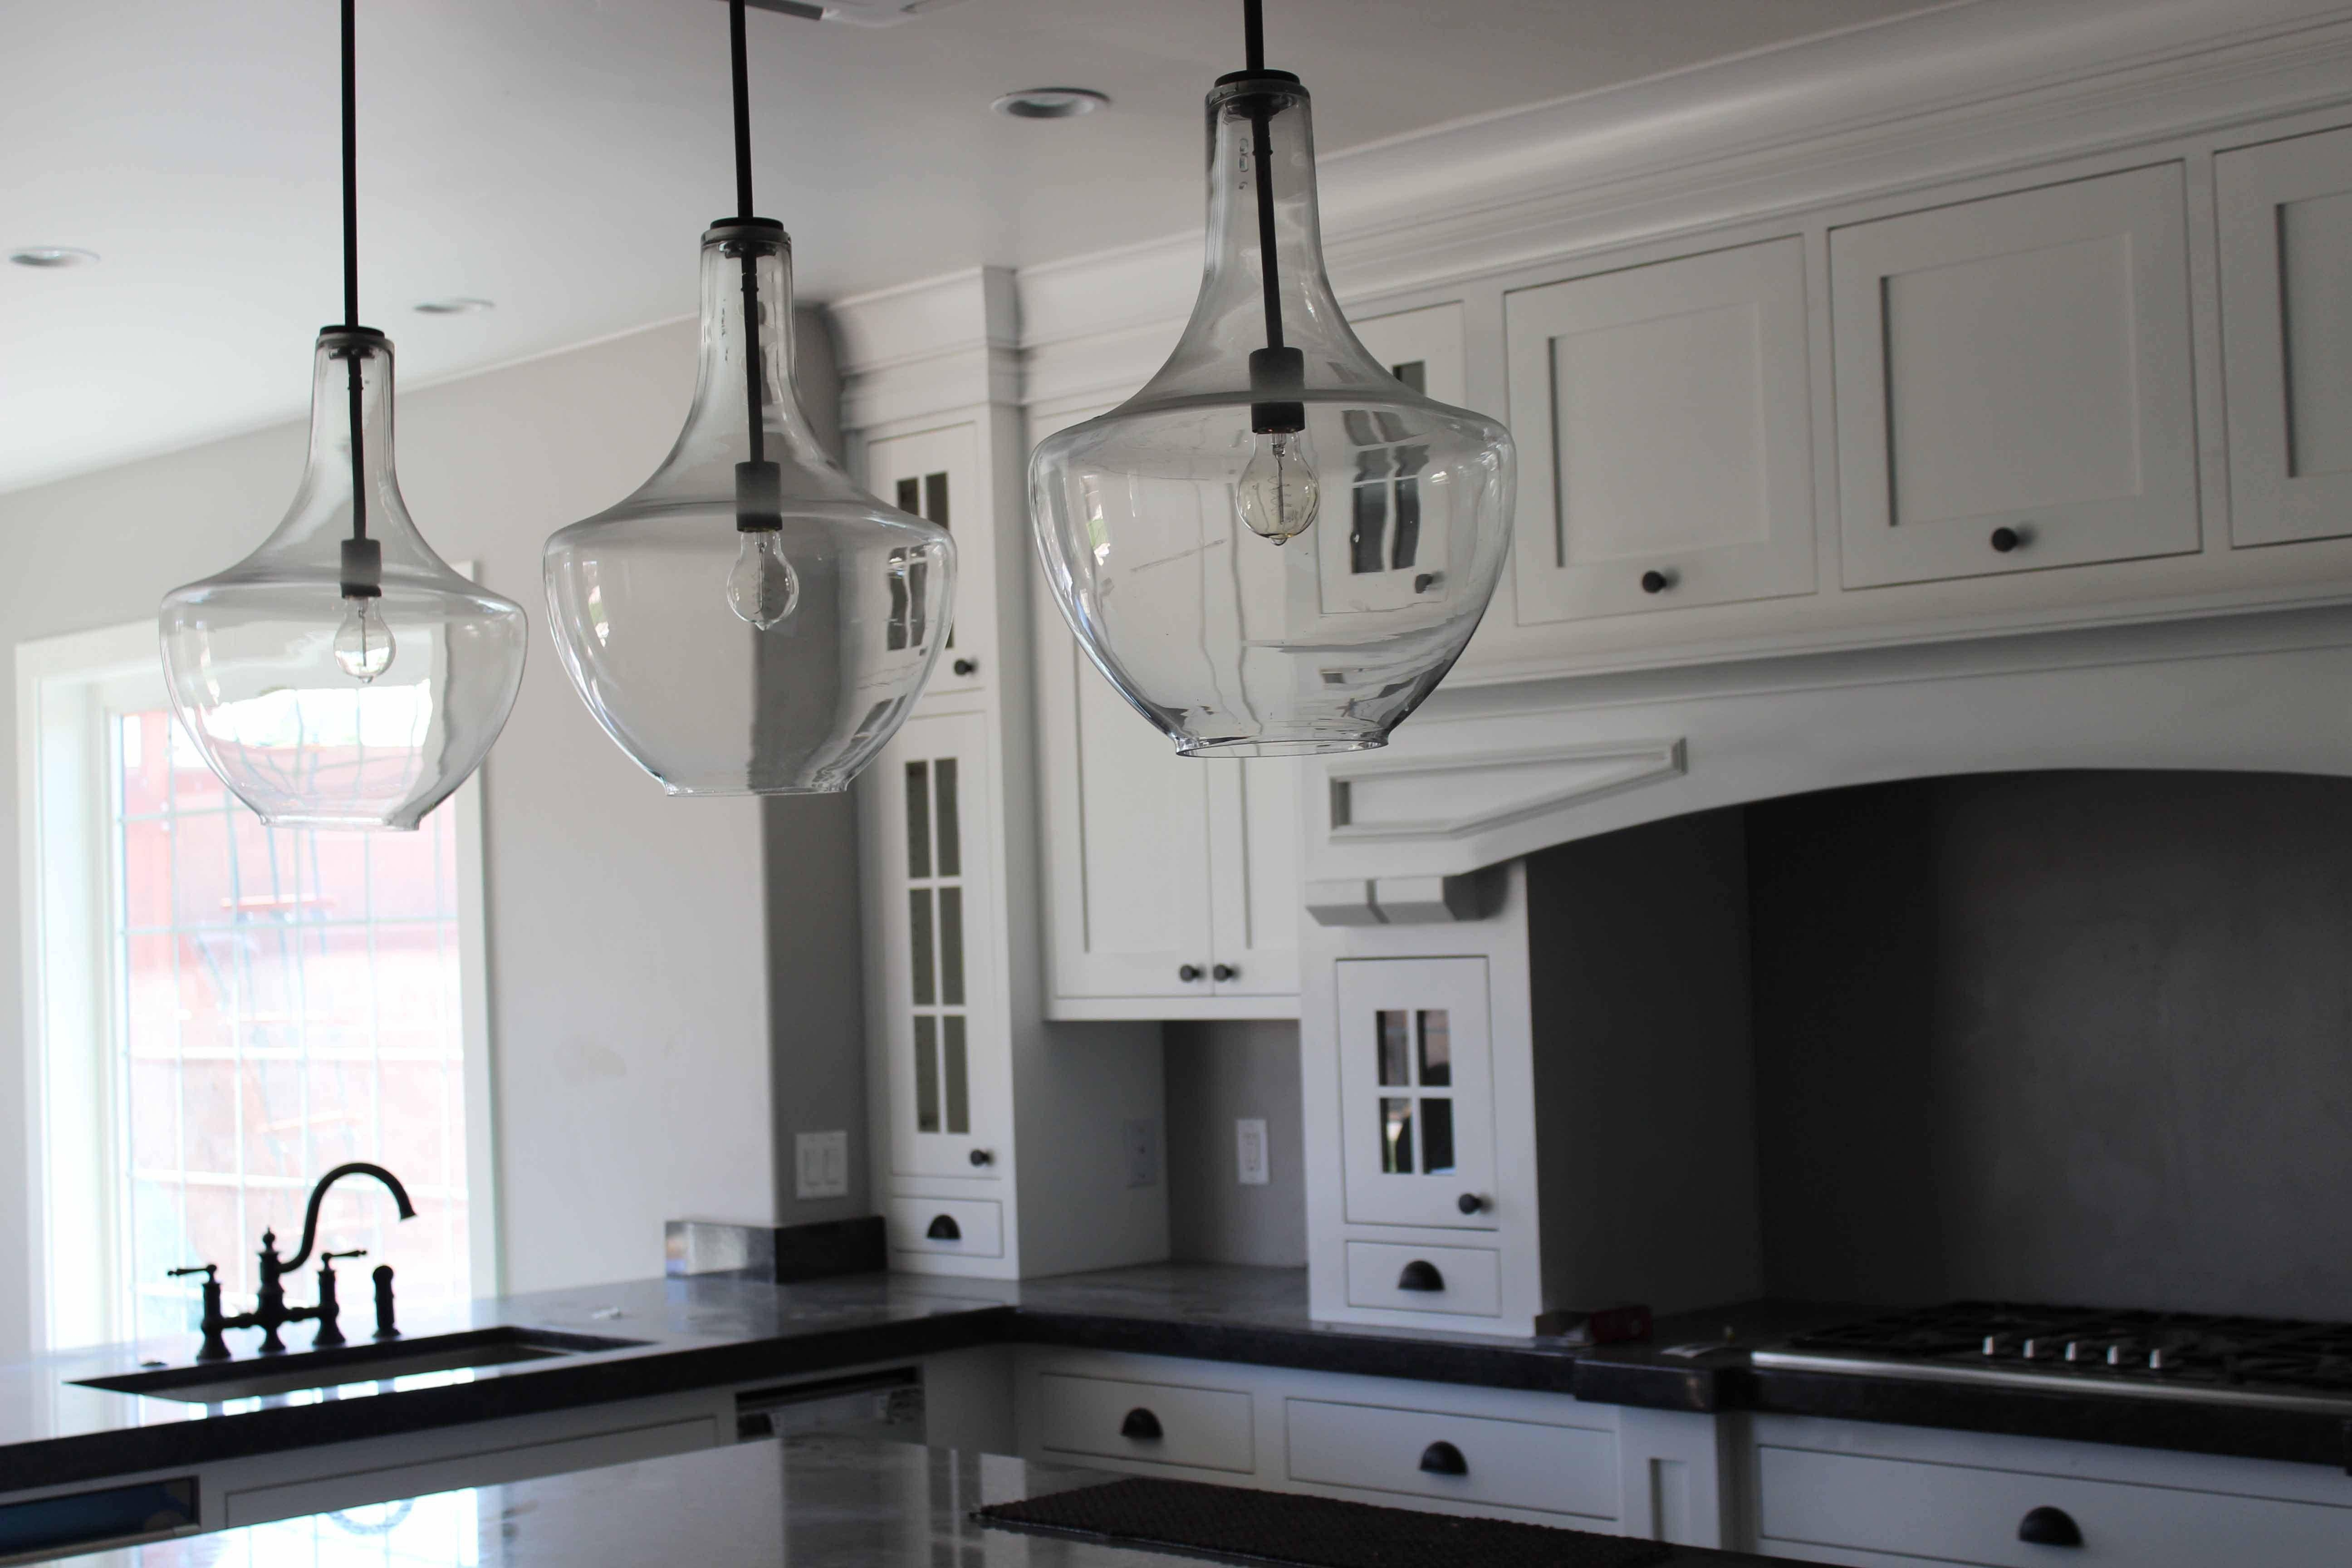 Metal Pendant Lights Chandelier For Kitchen Island Pendants Modern in Pendant Lighting For Track Systems (Image 8 of 15)